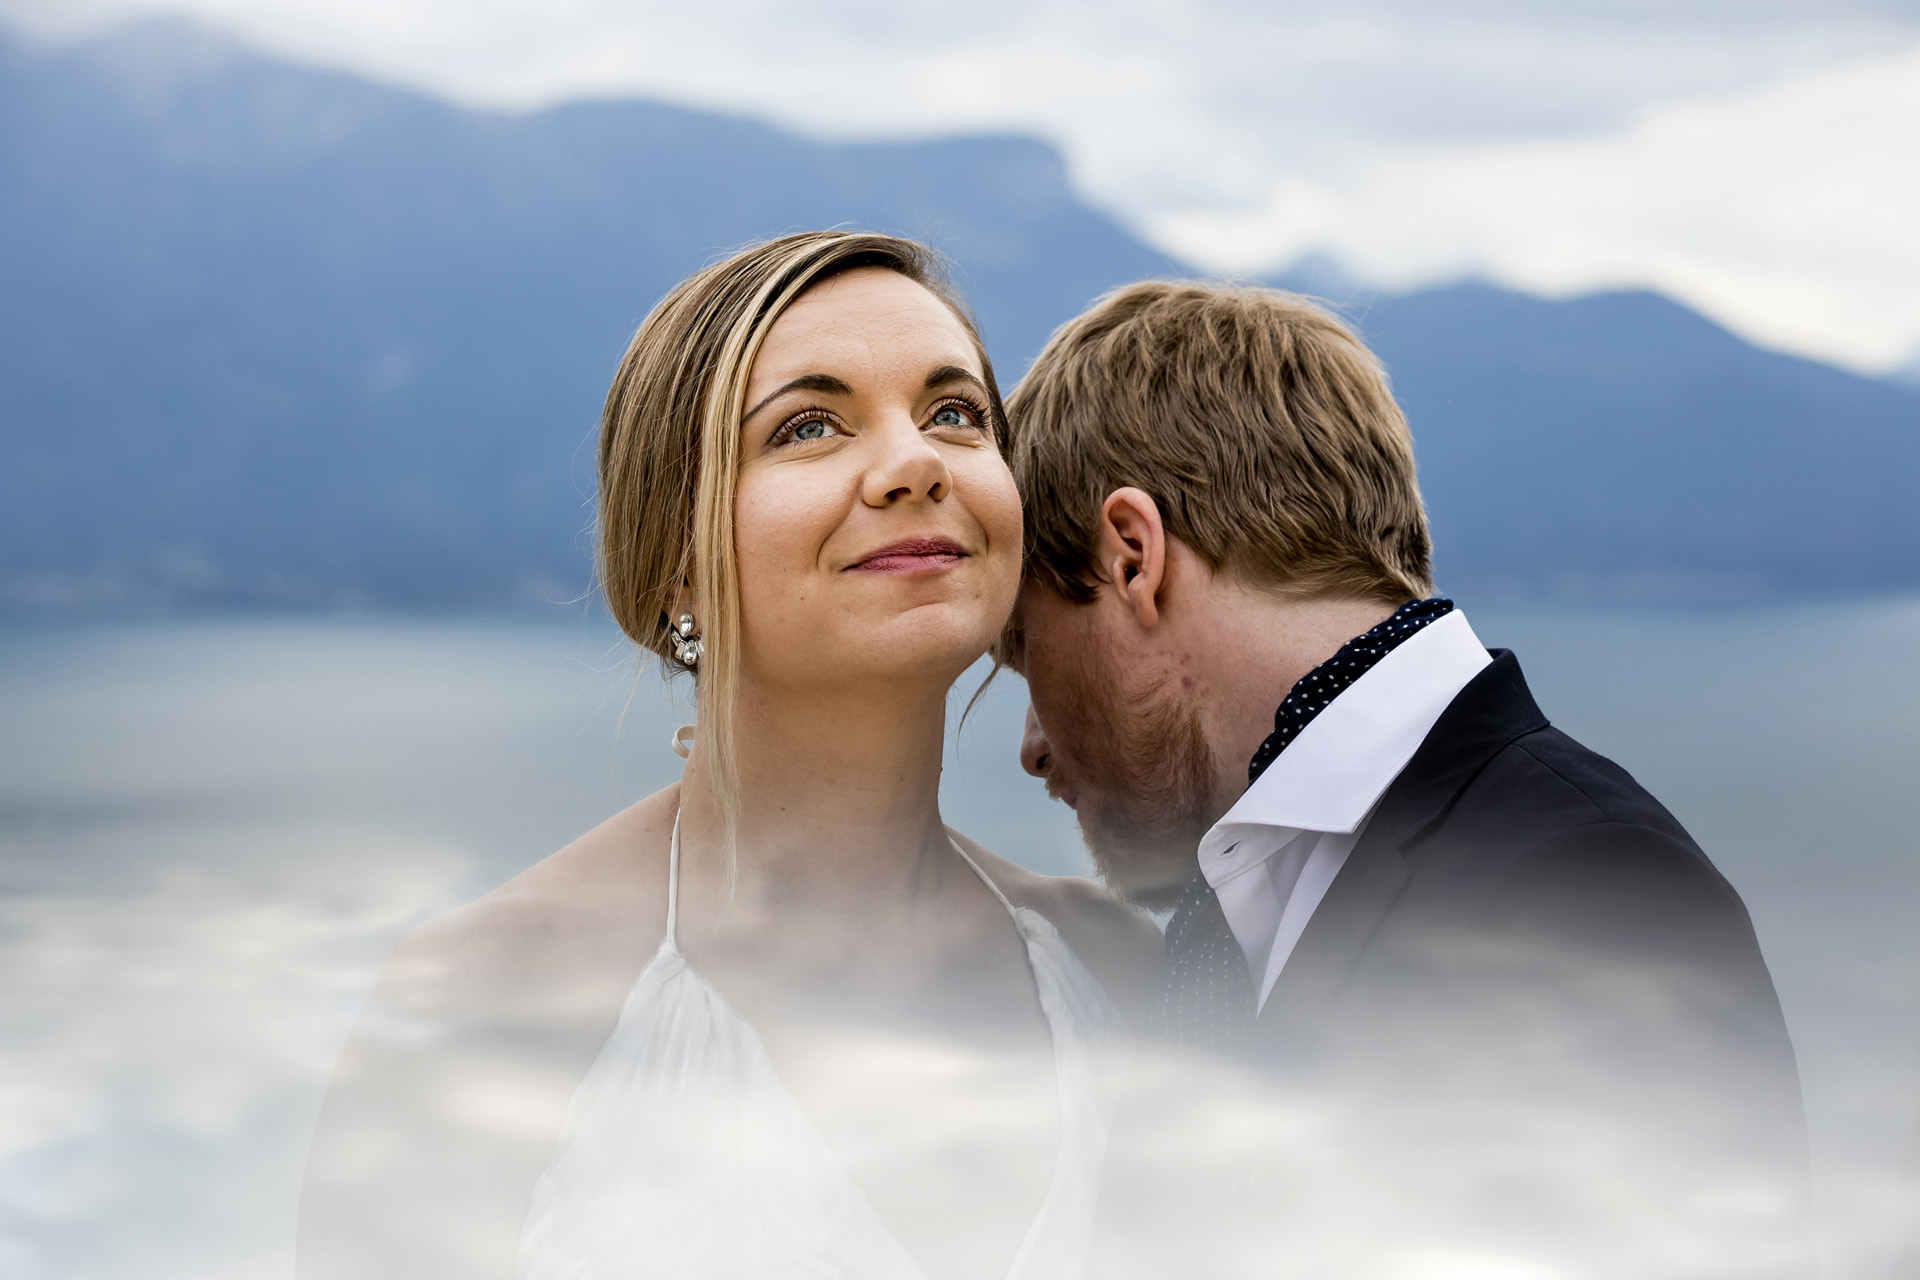 Wedding Elopement Couple Portrait - Switzerland | The afternoon photoshoot started at the terrace of Le Mirador Hotel during cocktails